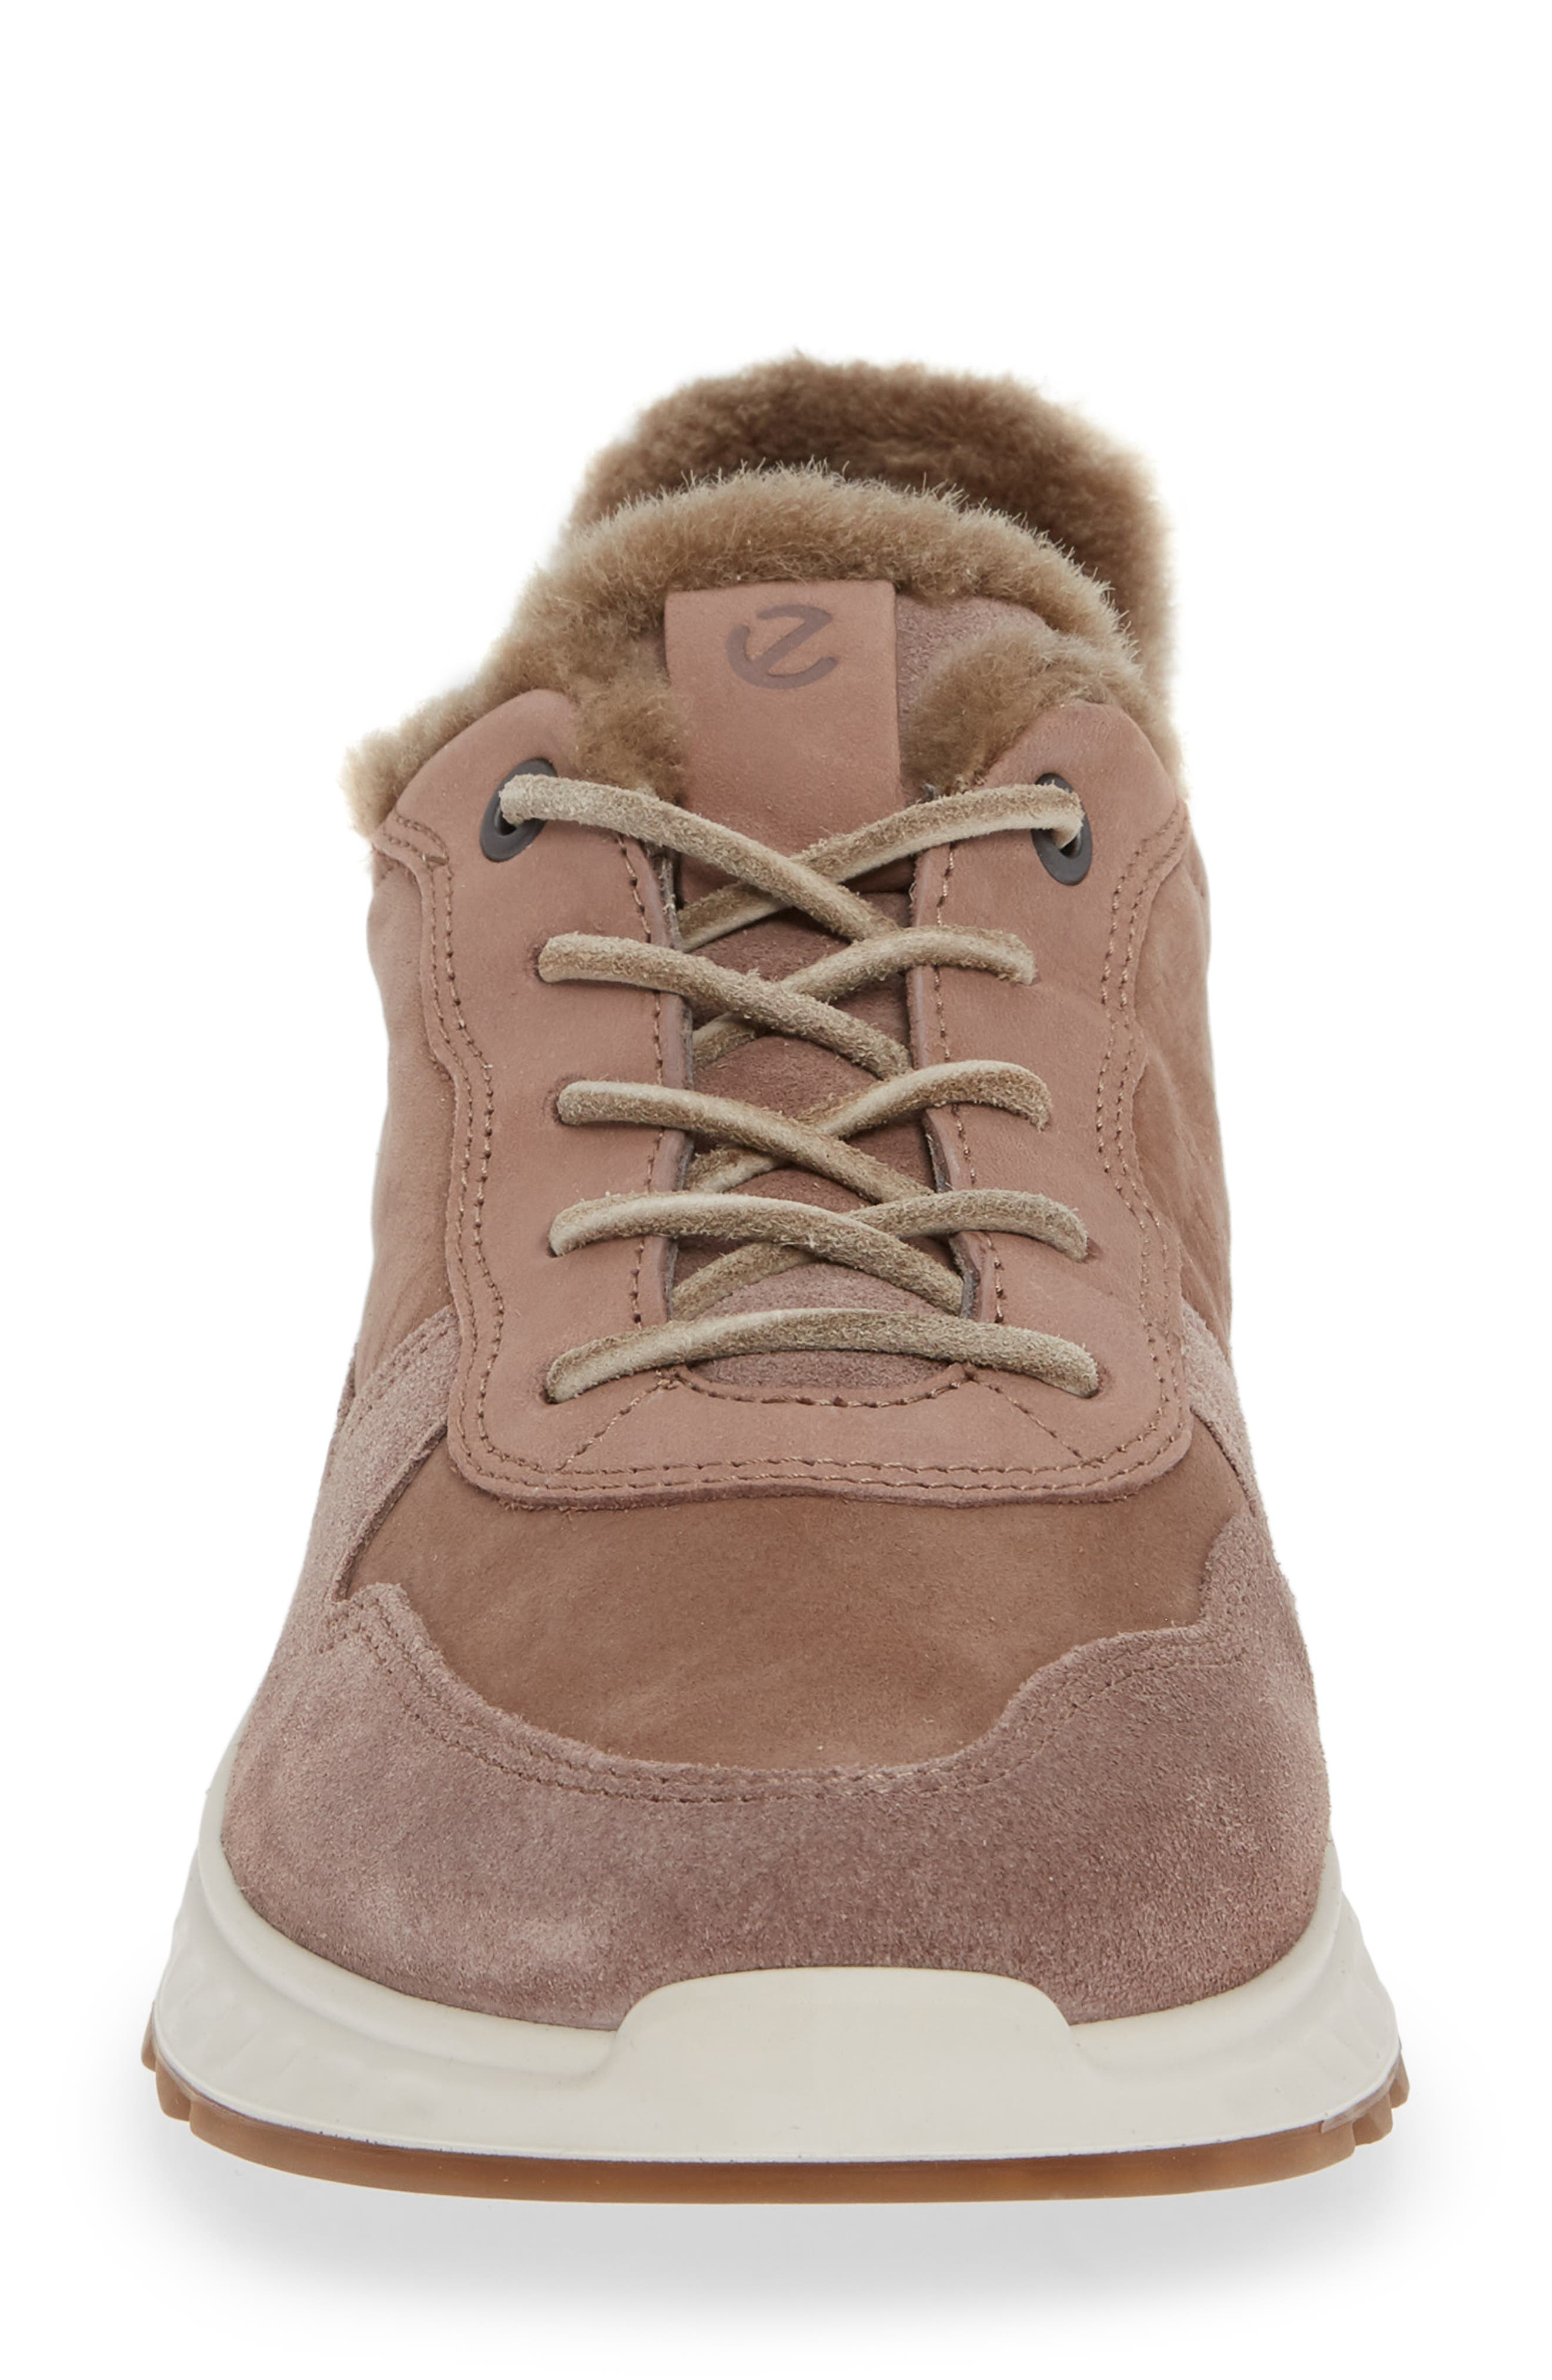 ST1 Genuine Shearling Sneaker,                             Alternate thumbnail 4, color,                             DEEP TAUPE NUBUCK LEATHER